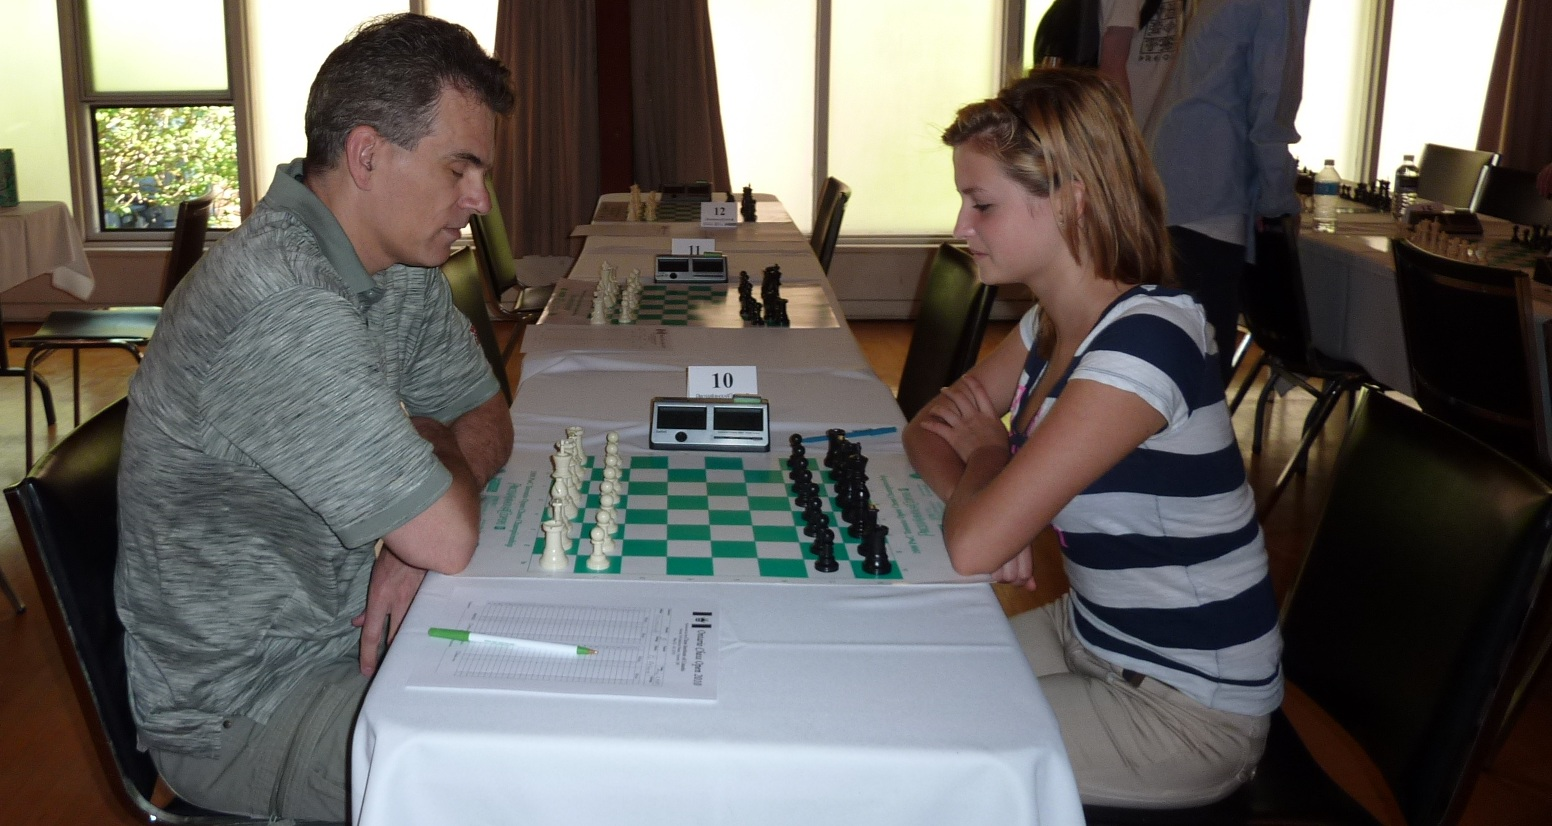 Board 10: David Filipovich - Yelizaveta Orlova